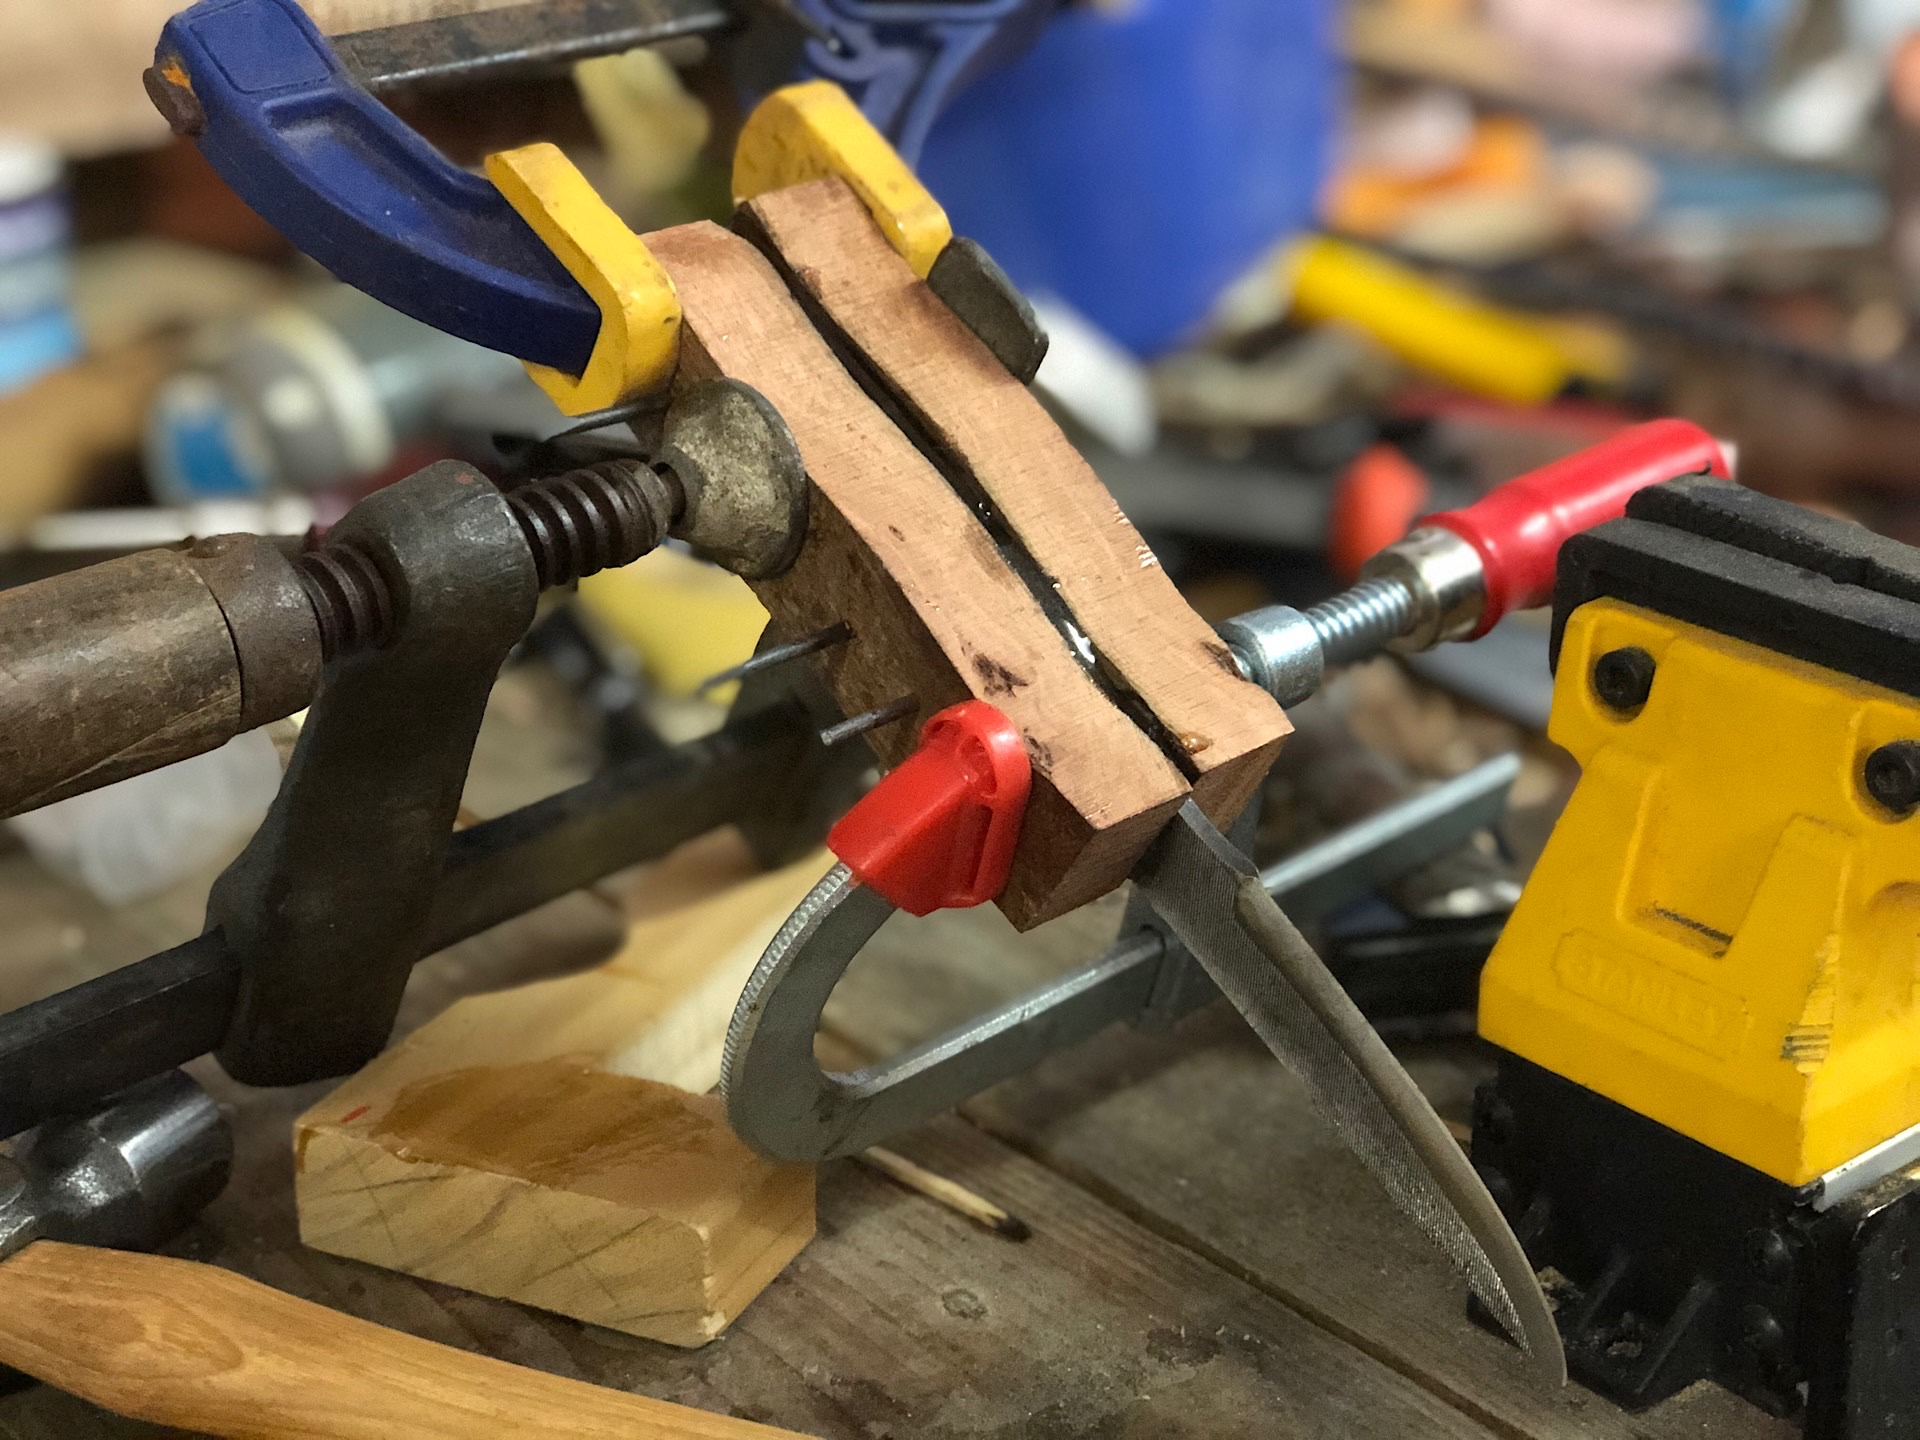 Glueing the wooden scales to a knife